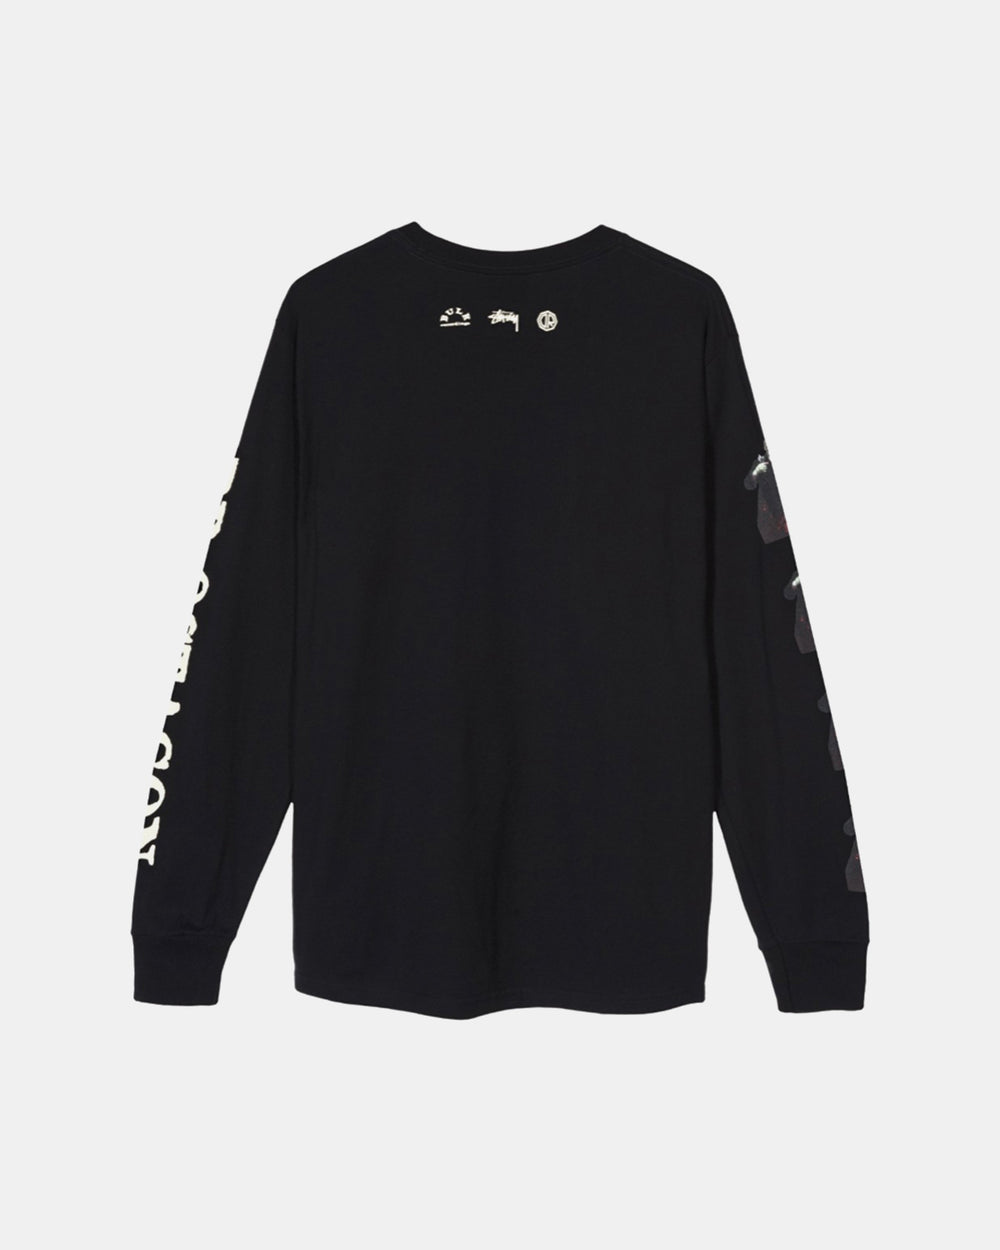 Stussy - Stussy x Dr. Octagon Ice Cream Fudge Long Sleeve Tee (Black)